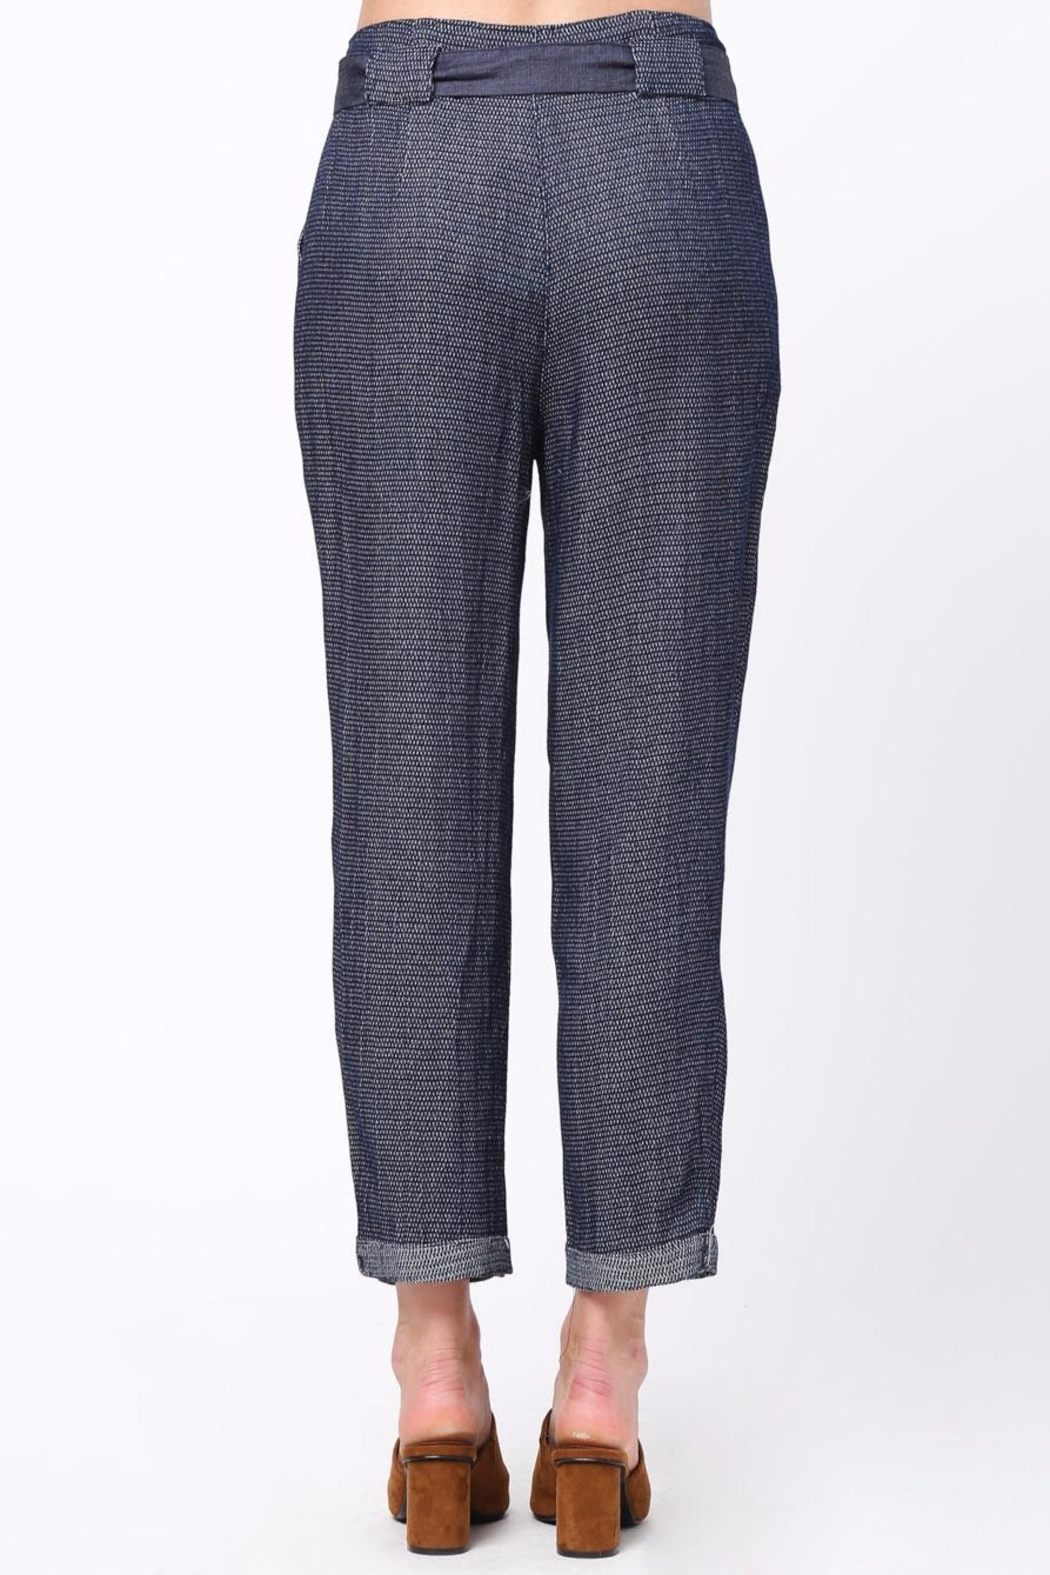 Movint Frayed Seam Trouser - Front Full Image